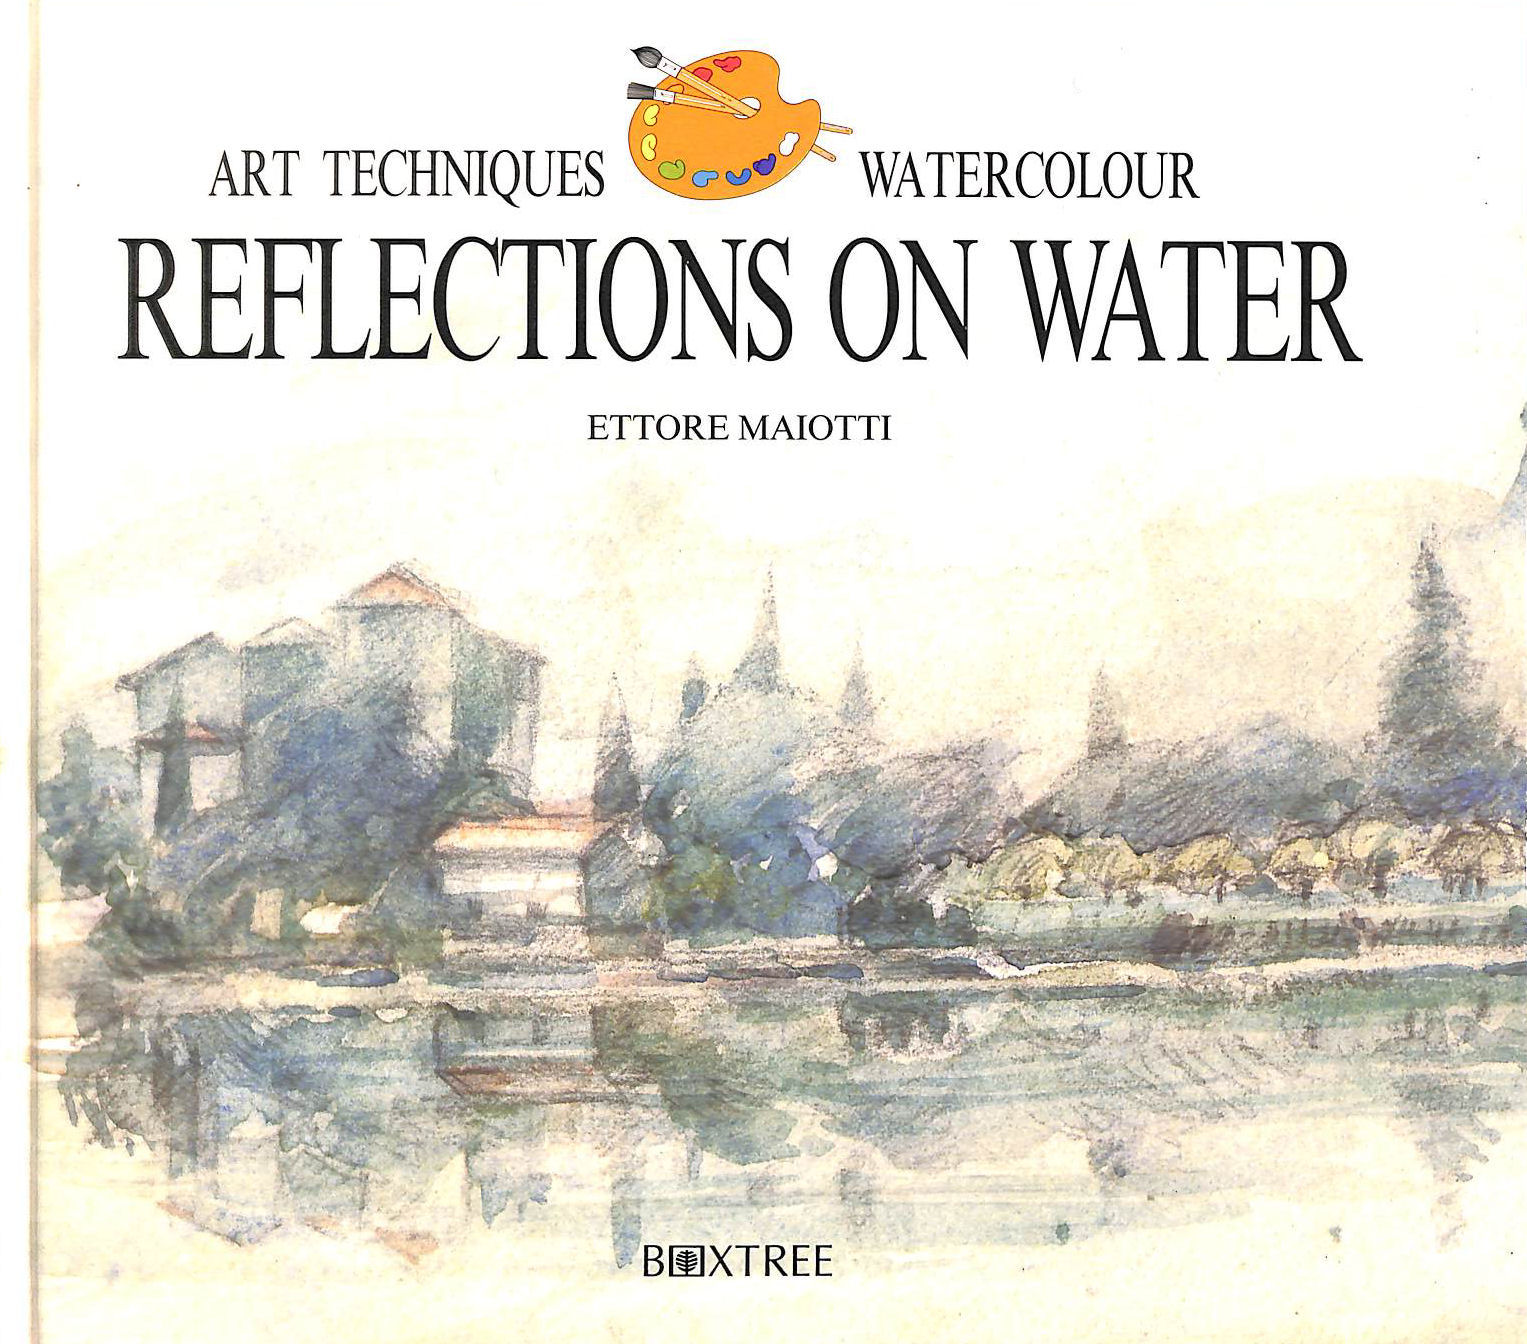 Image for Watercolour: Reflections on Water